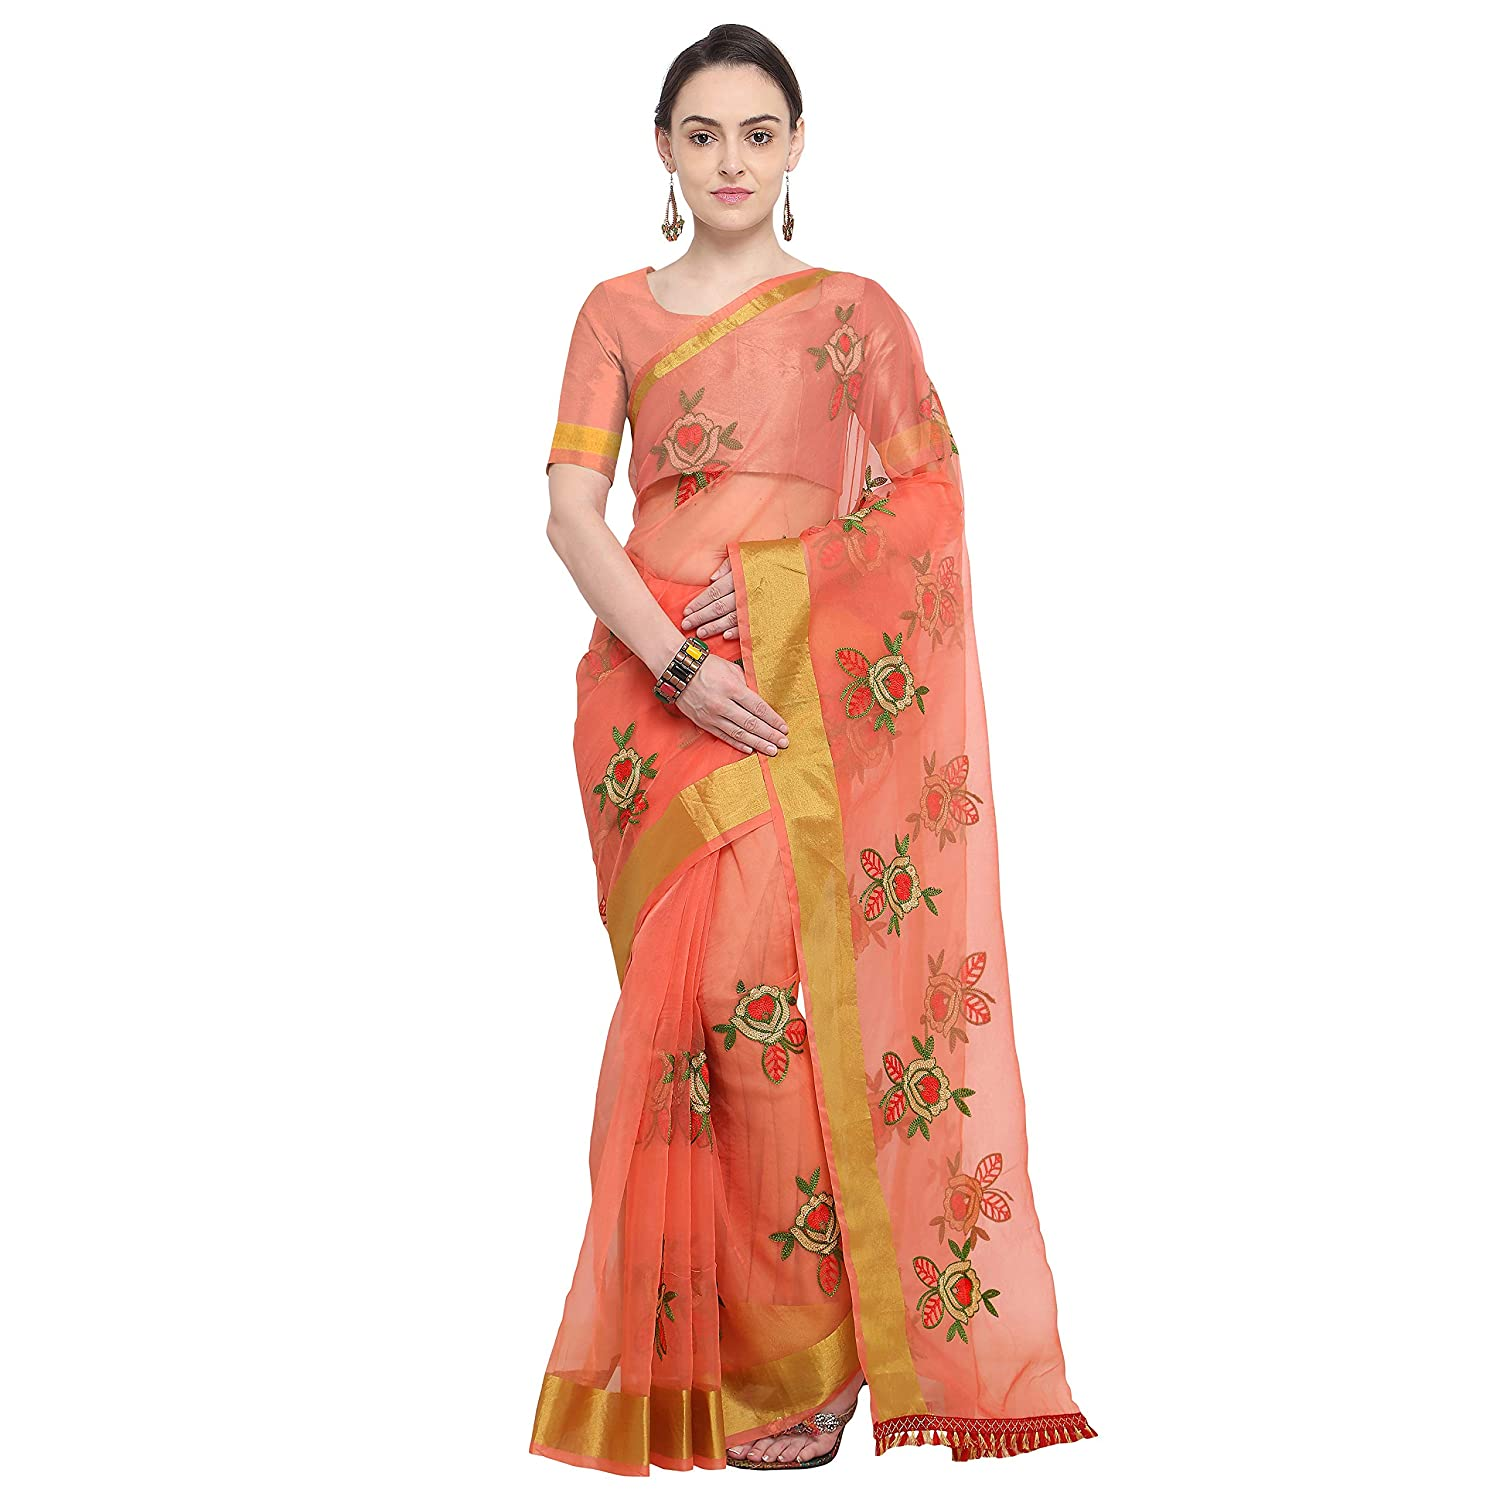 Sidhidata Textile Women's Organza Flower Embroidery saree With Unstitched Blouse Piece(organza flower peach_Peach_Free Size)